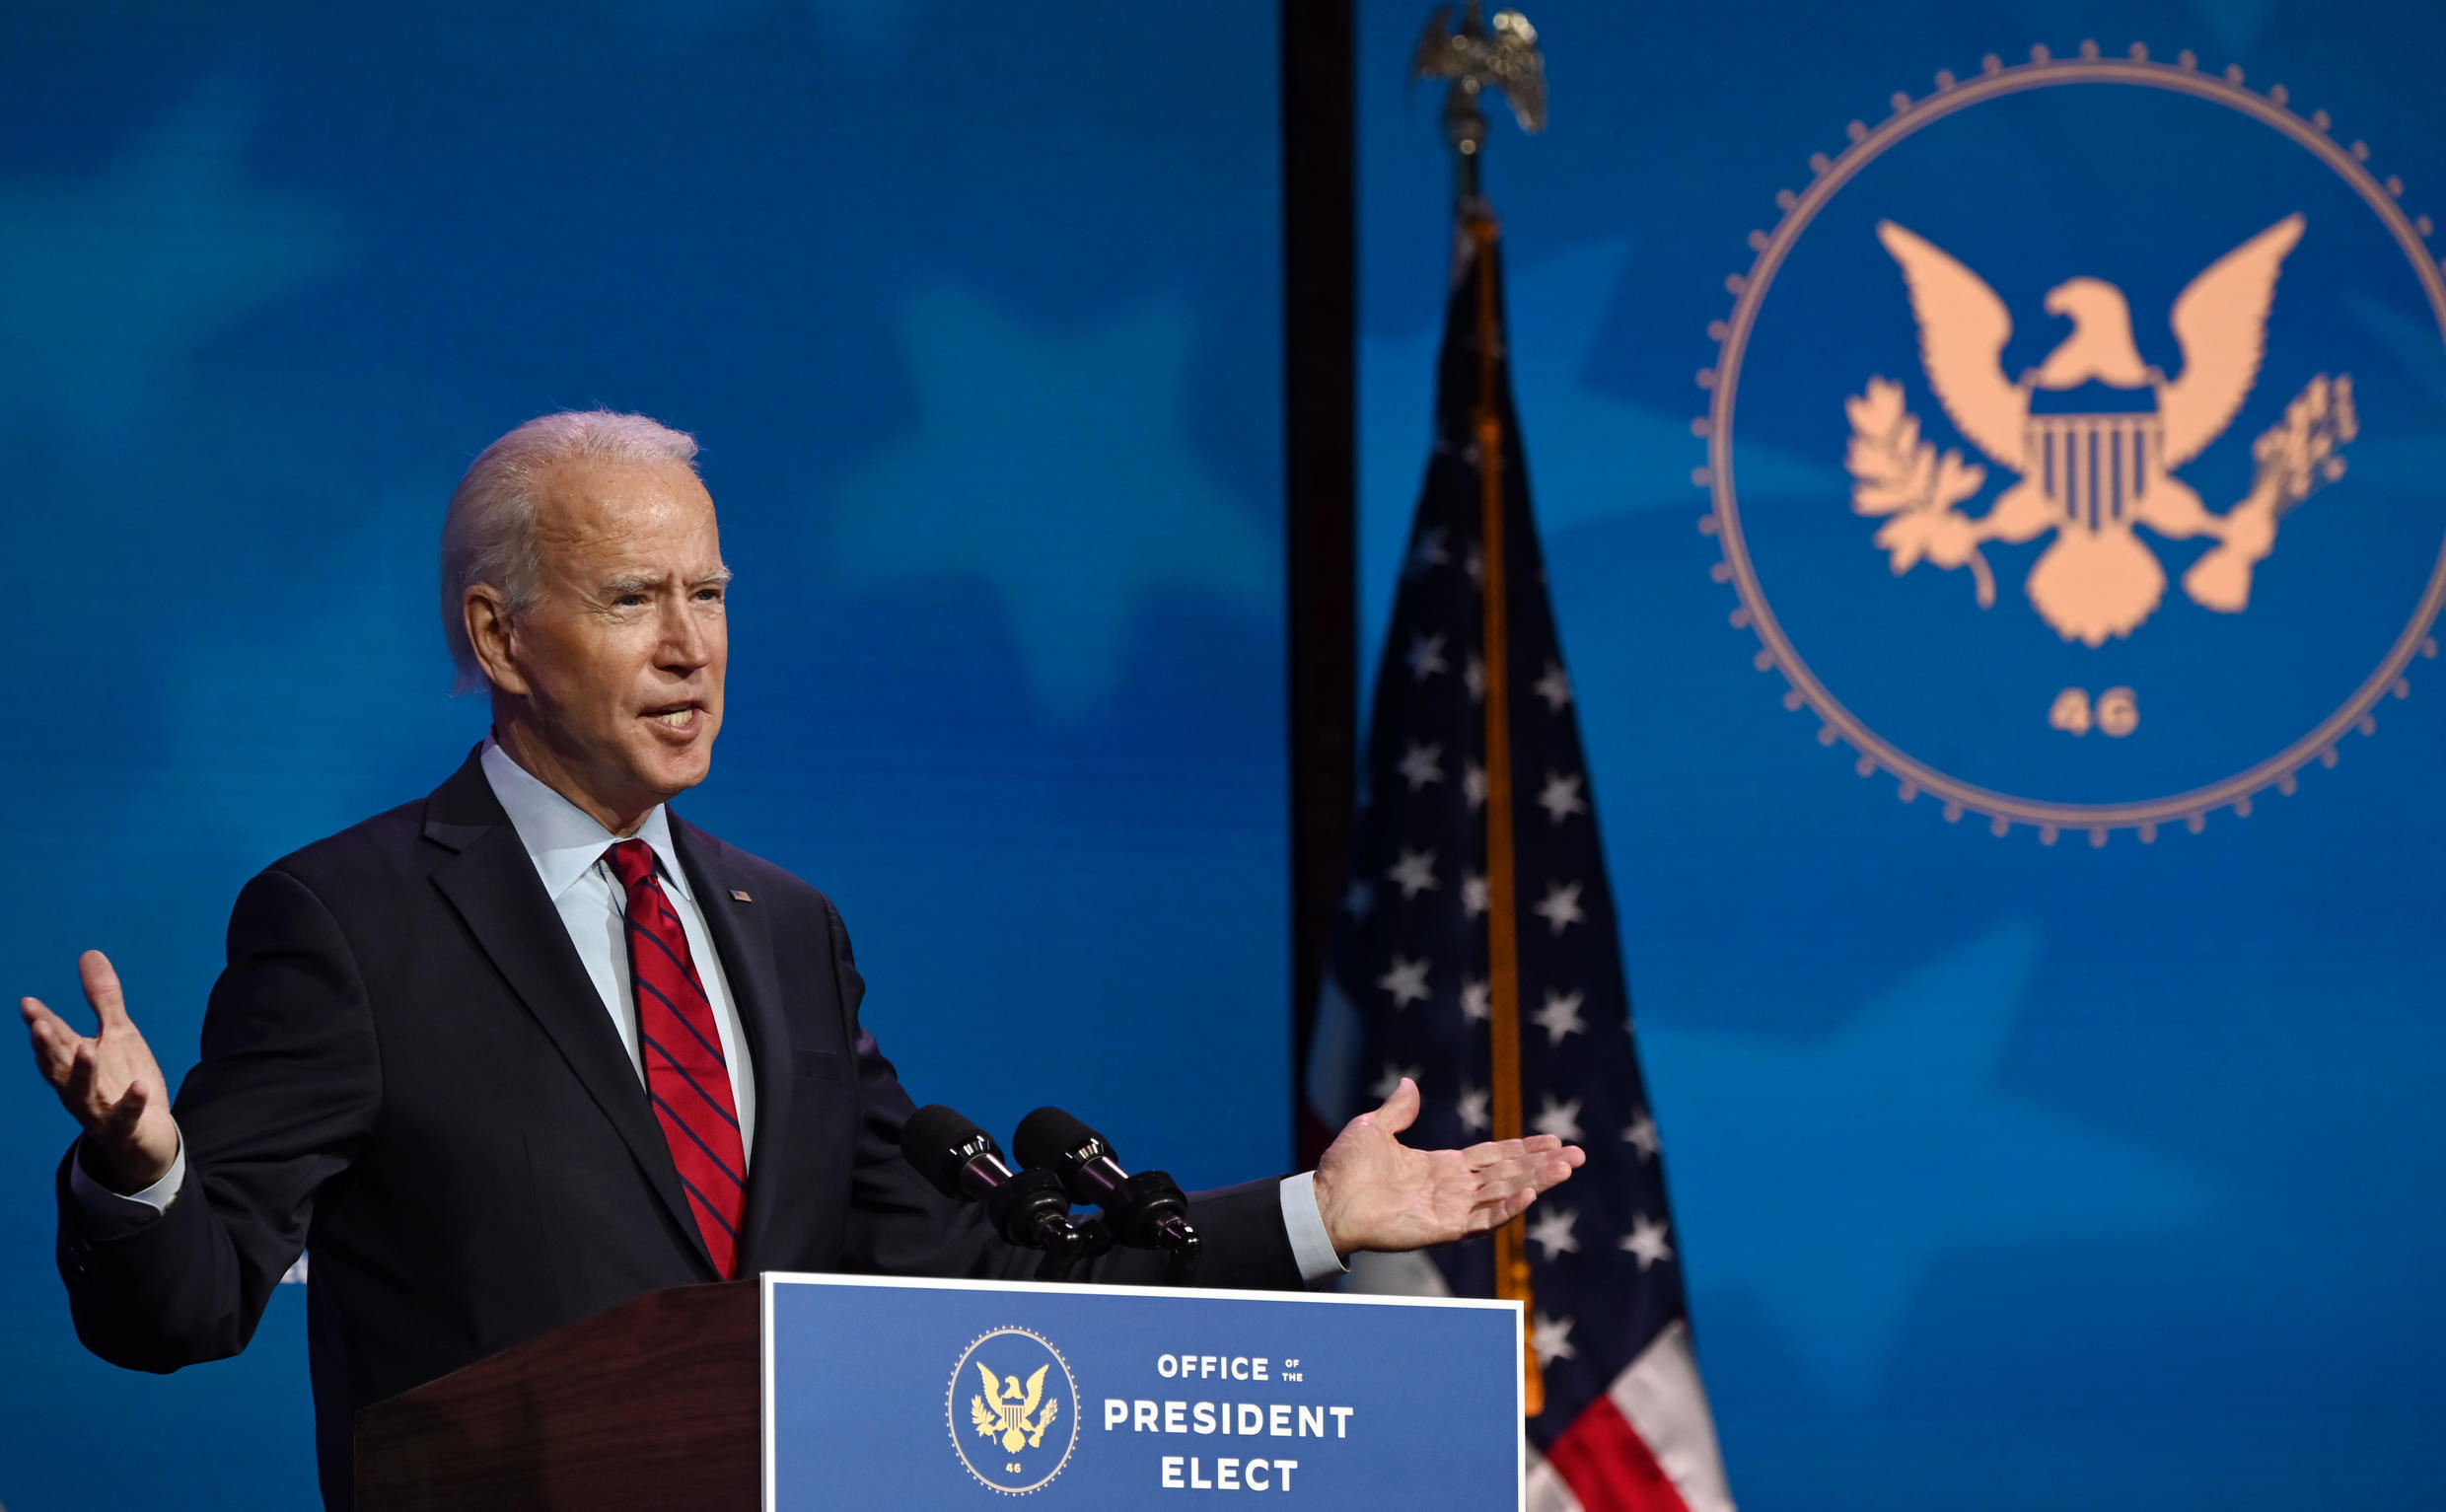 YouTube has long faced calls to take action against videos spreading misinformation related to the US presidential election won by Joe Biden